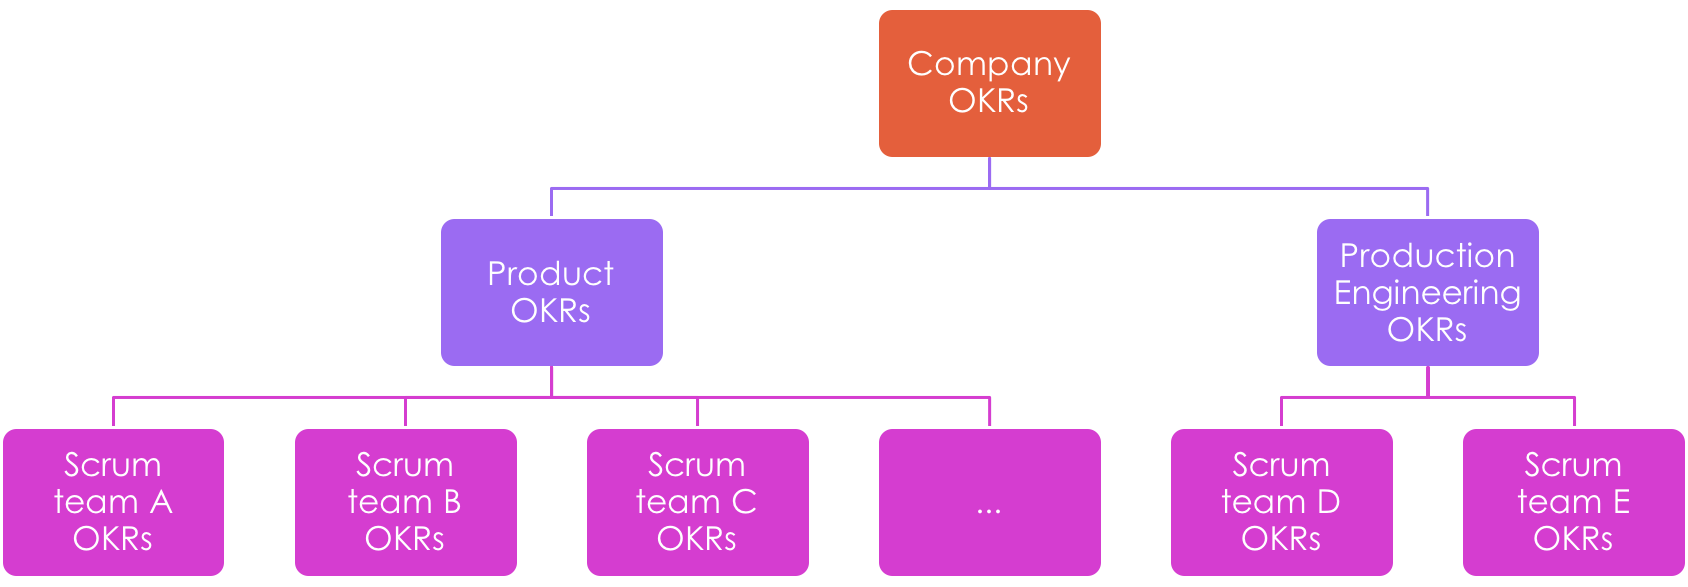 Hierarchy of OKRs Helps with Alignment and Clarity